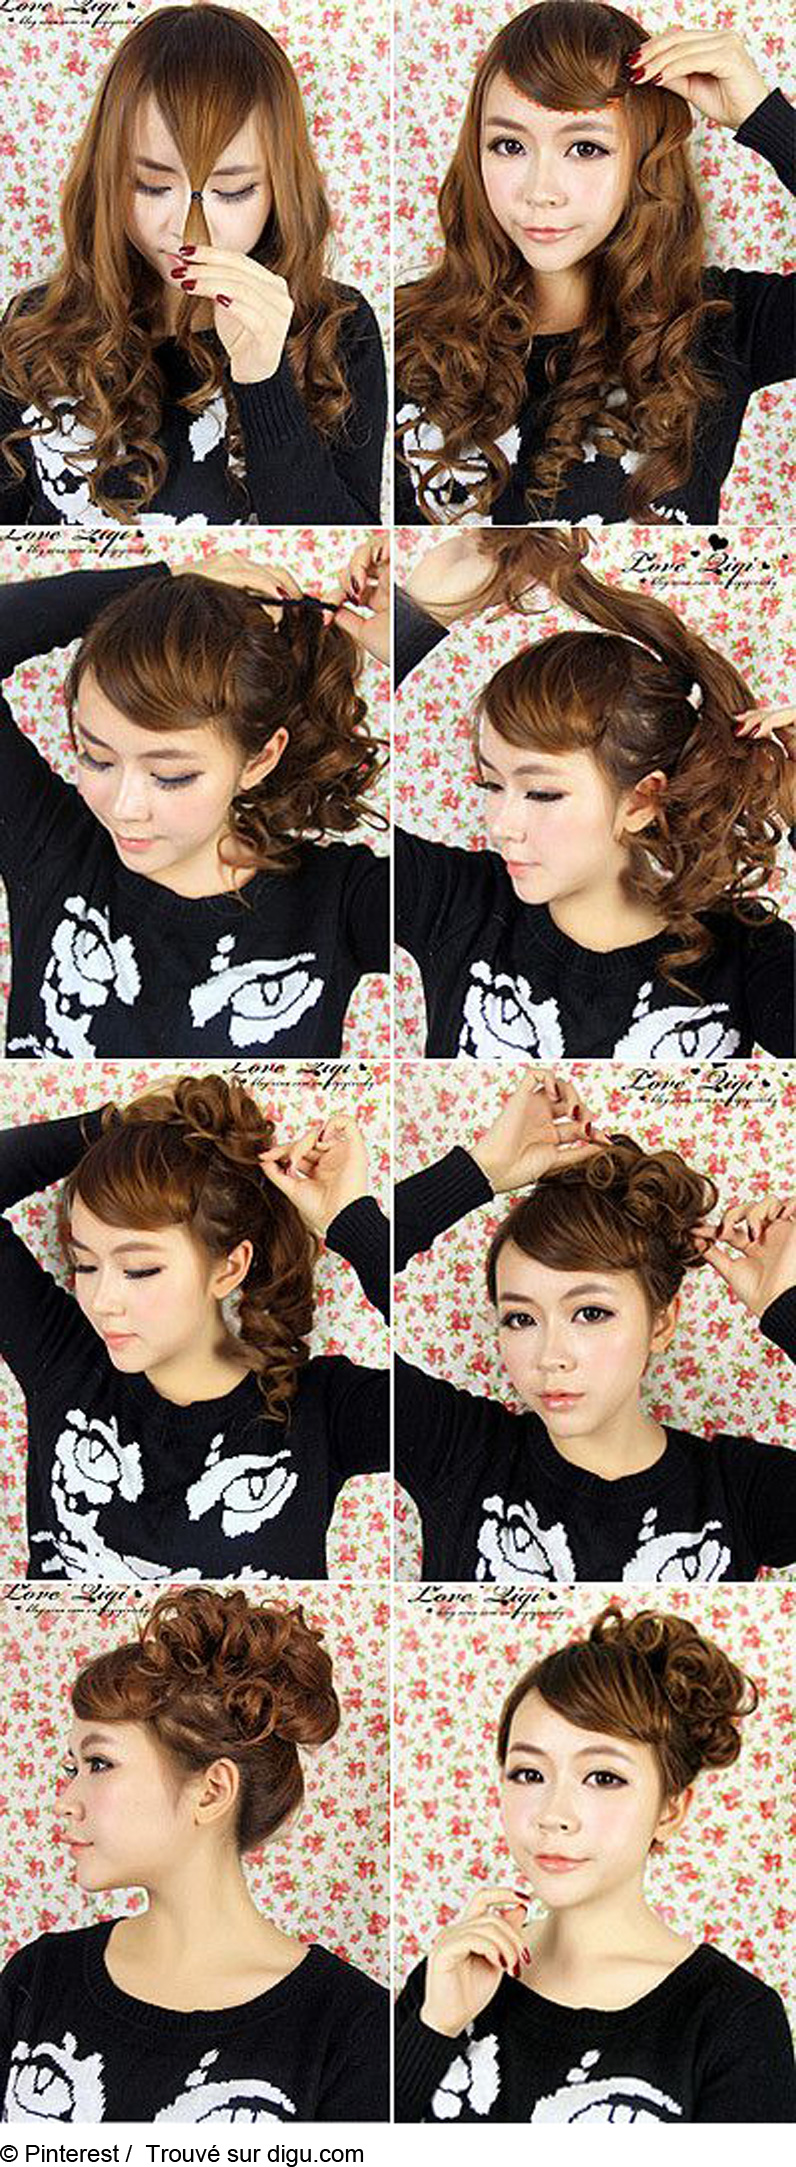 Coiffure express cheveux boucles.jpg